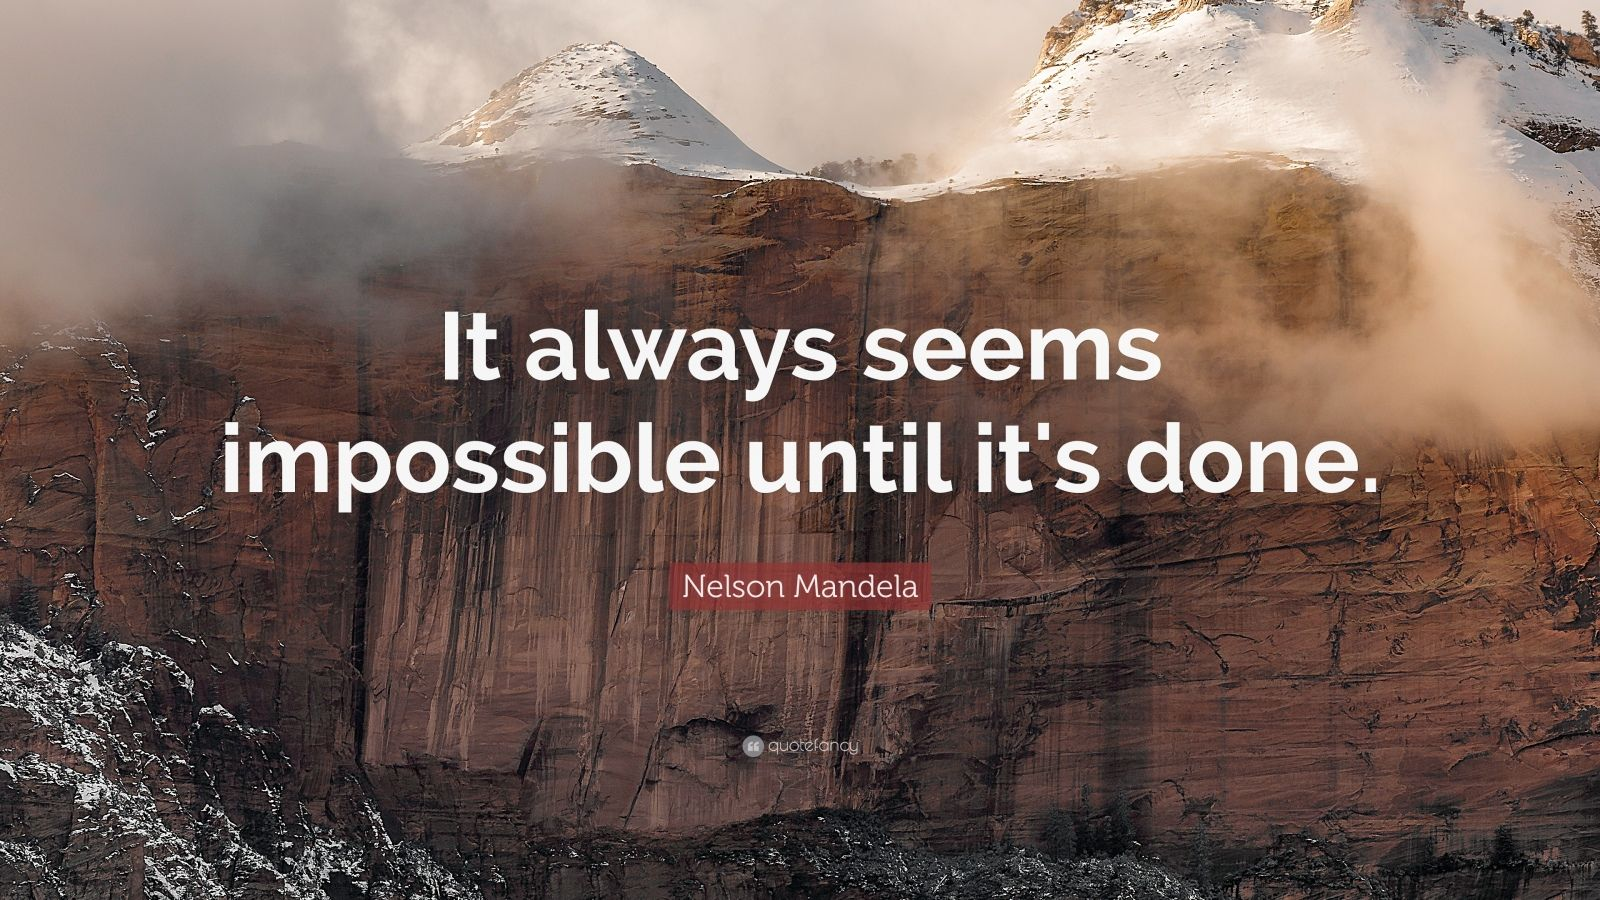 Mahatma Gandhi Wallpaper With Quotes Nelson Mandela Quote It Always Seems Impossible Until It